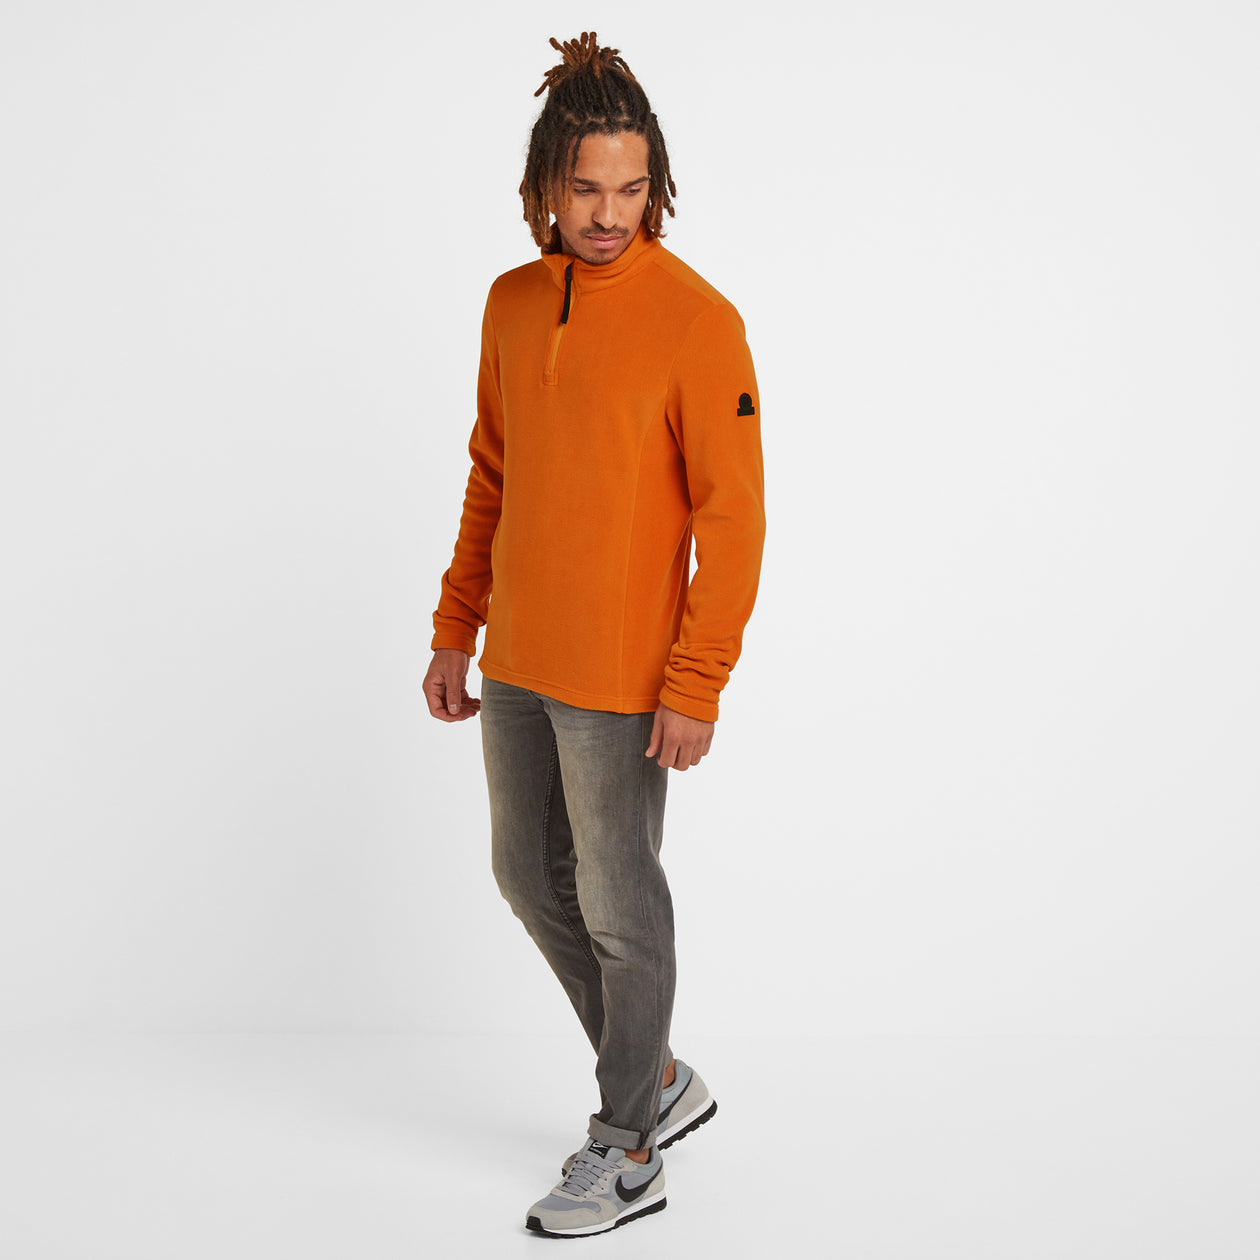 Shire Mens Fleece Zipneck - Satsuma image 4